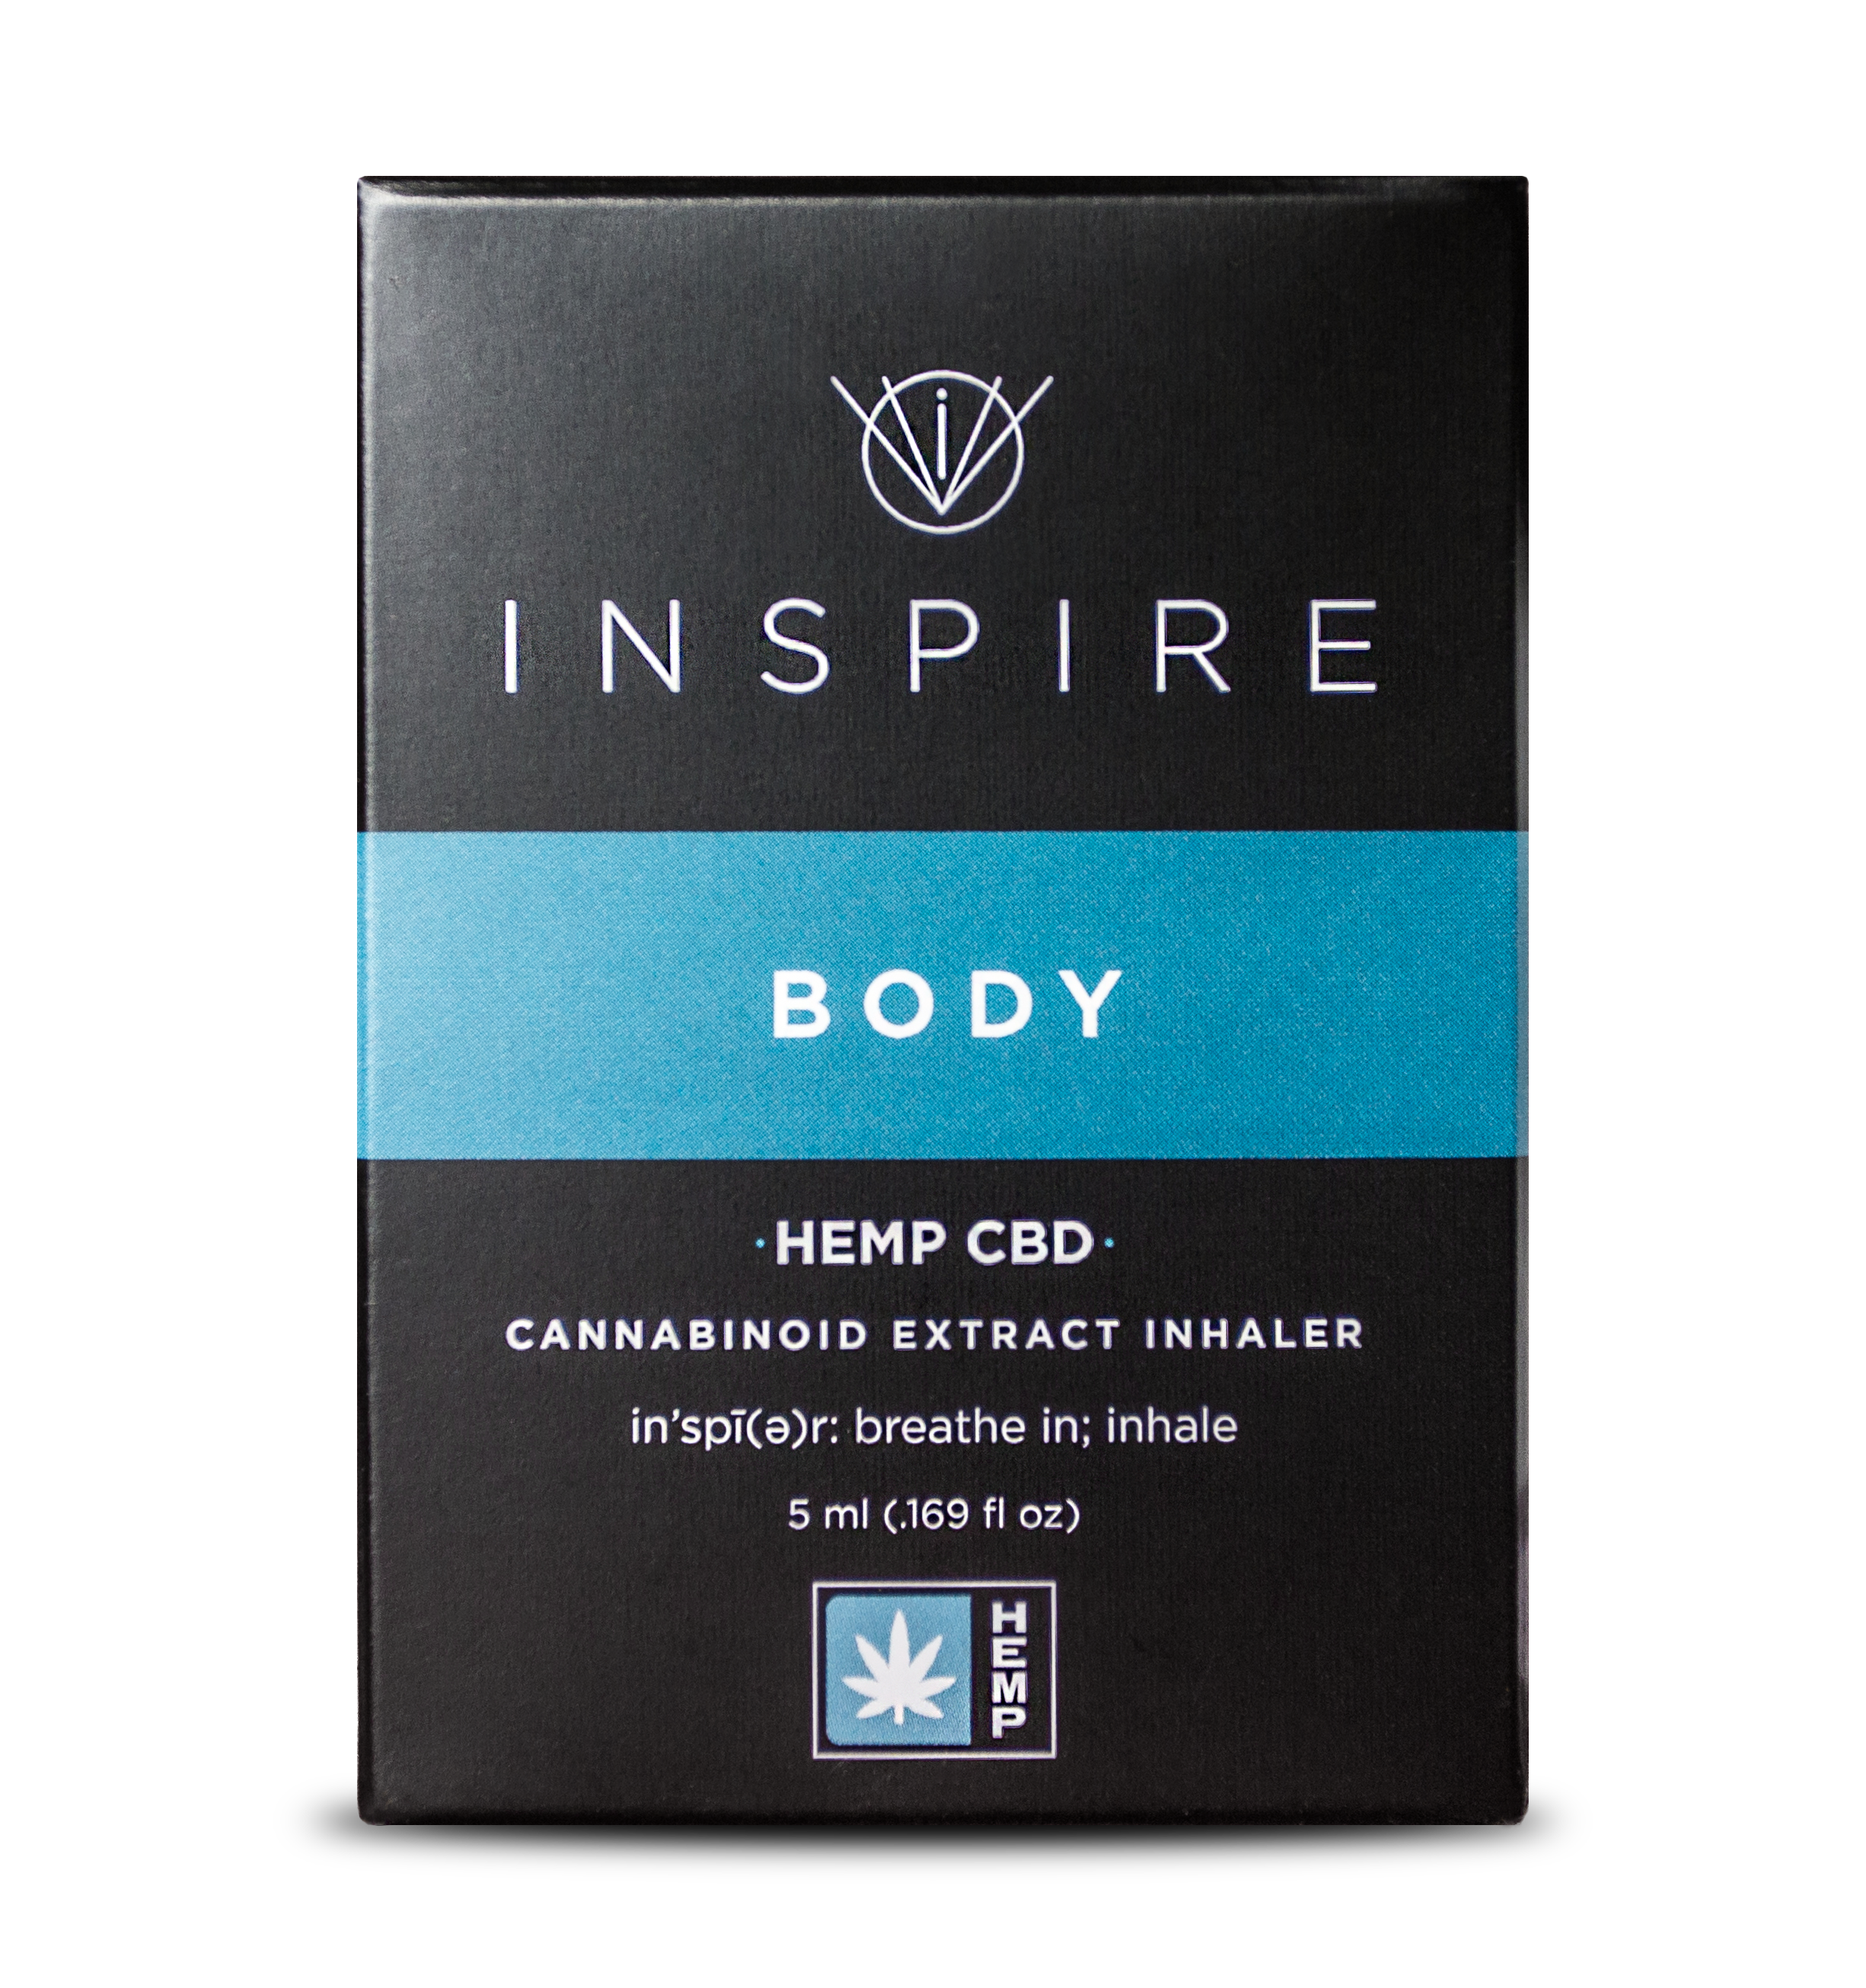 Inspire-box-body.png